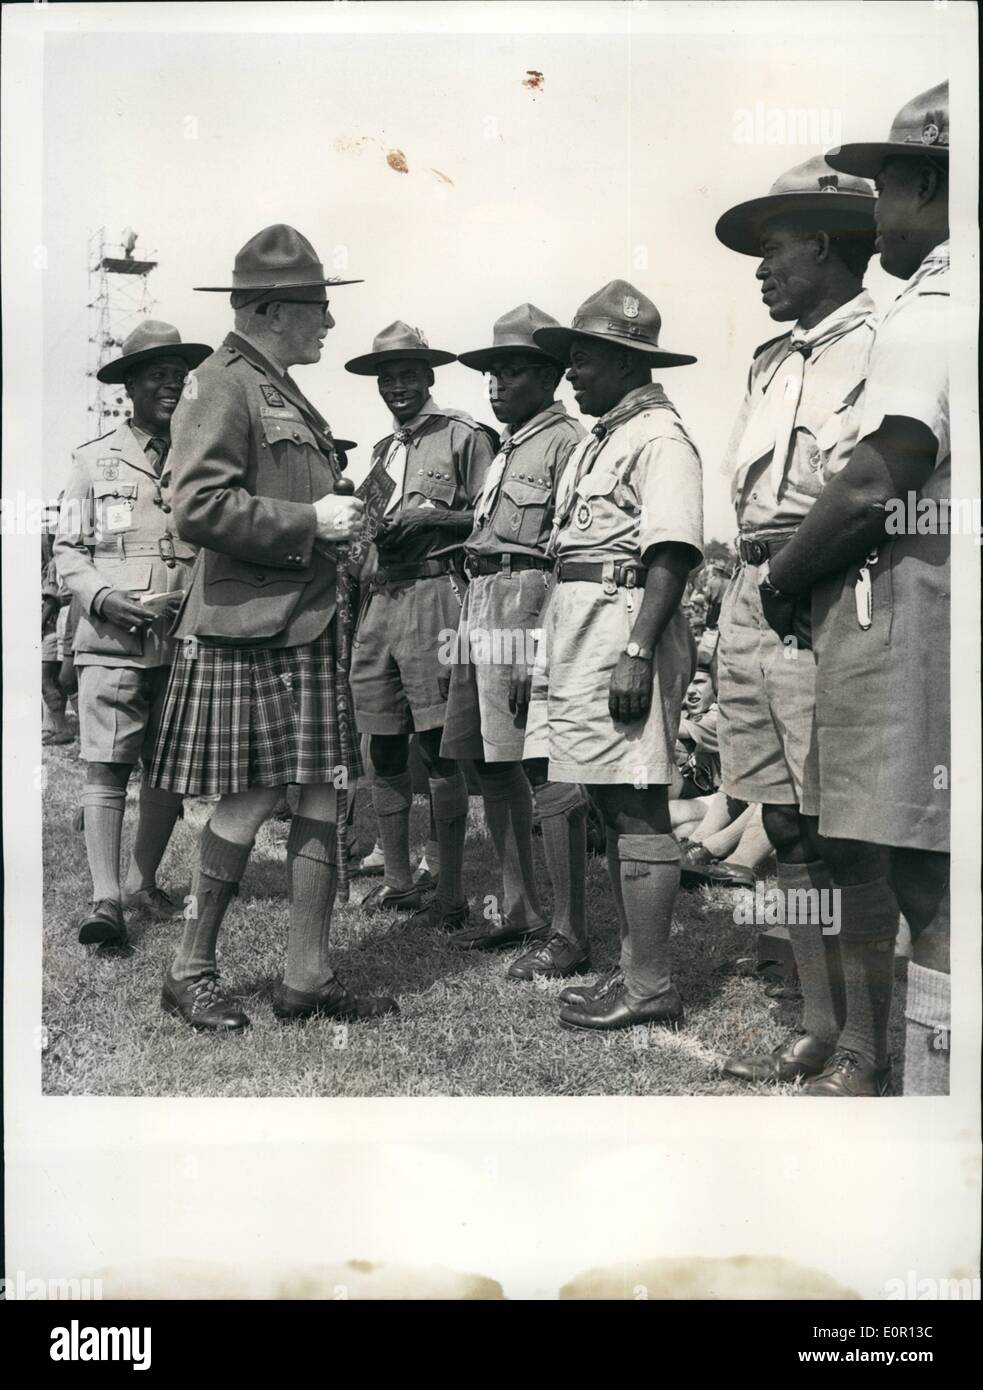 Aug. 08, 1957 - Duke of Gloucester opens Scouting Jamboree.: The World Scout Jubilee Jamboree at Sutton Cold field, England, was opened by the Duke of Gloucester, who is President of the Boy Scouts Association, After the Duke had made his speech of welcome he drove round the ranks of 35,000 Scouts from 82 countries and toured the camps in which they are living. Photo shows Major .H. Donald, second from left, former Chief Commissioner of the Gold Coast (Ghana ), chats with members of the Ghana Contingent at Sutton Camp. E.D. Tackle, head of the contingent, is on extreme left. - Stock Image